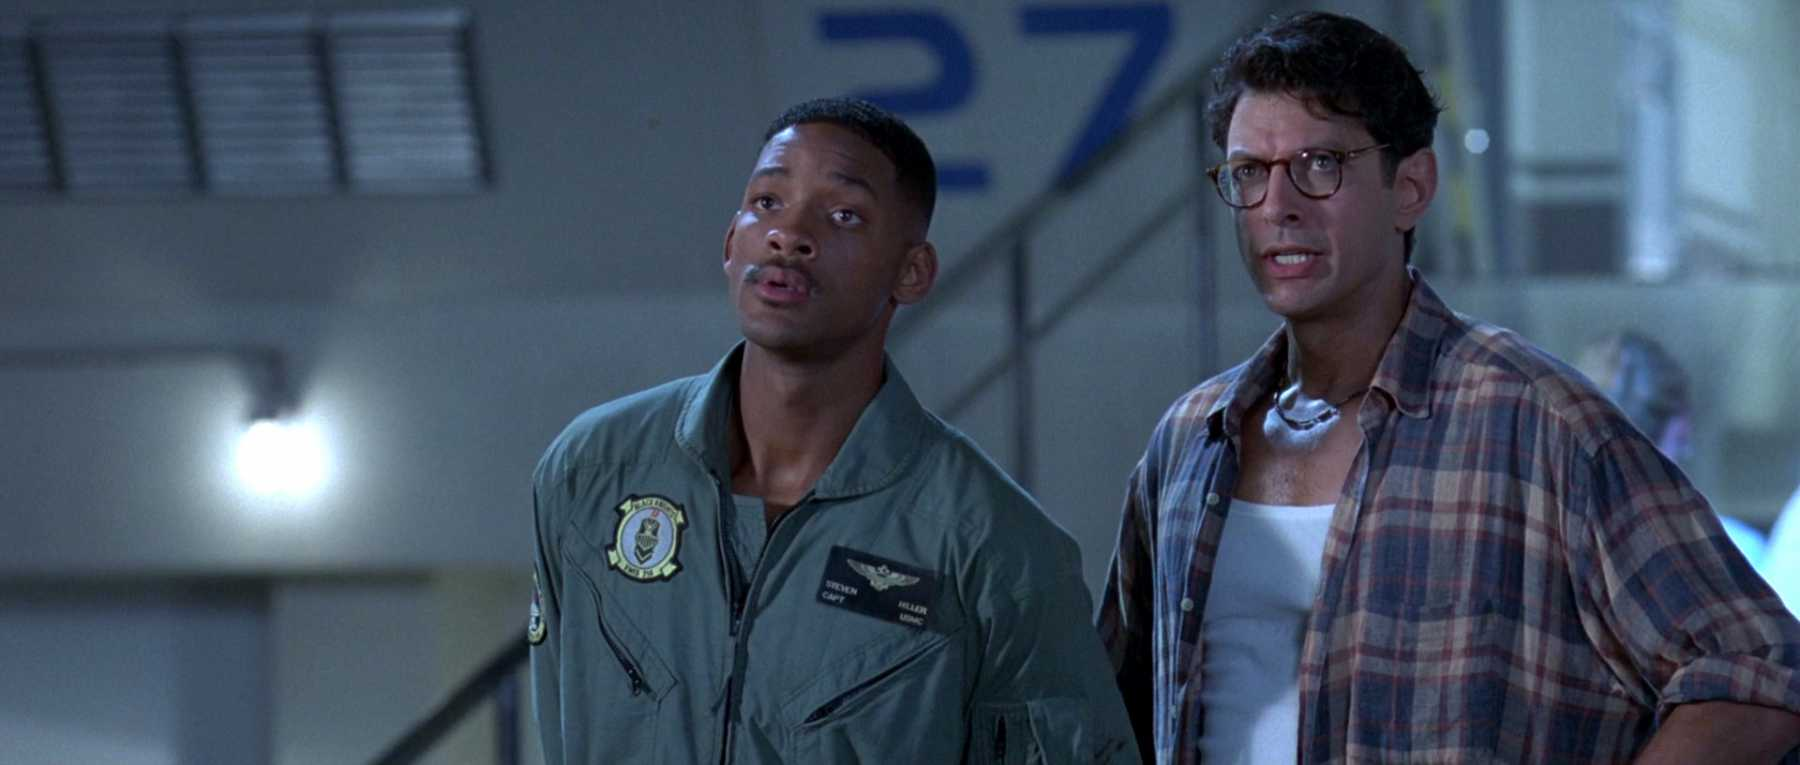 'Independence Day 2' Confirmed For 2016 Release | Independence Day 2